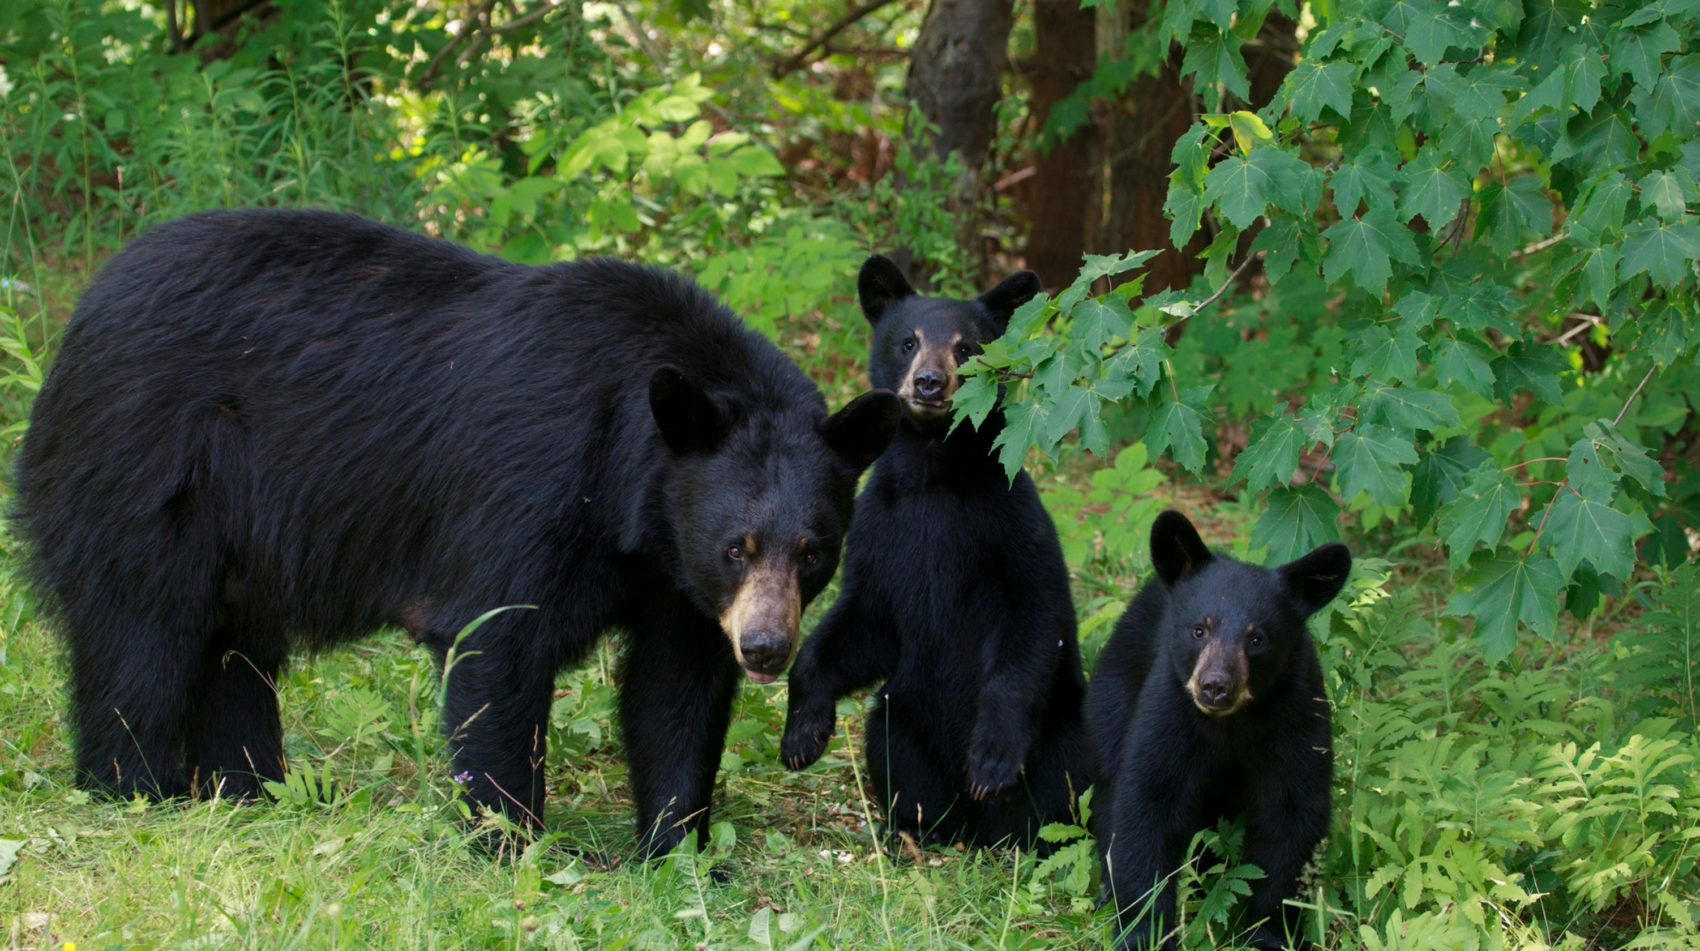 Black bears with cubs